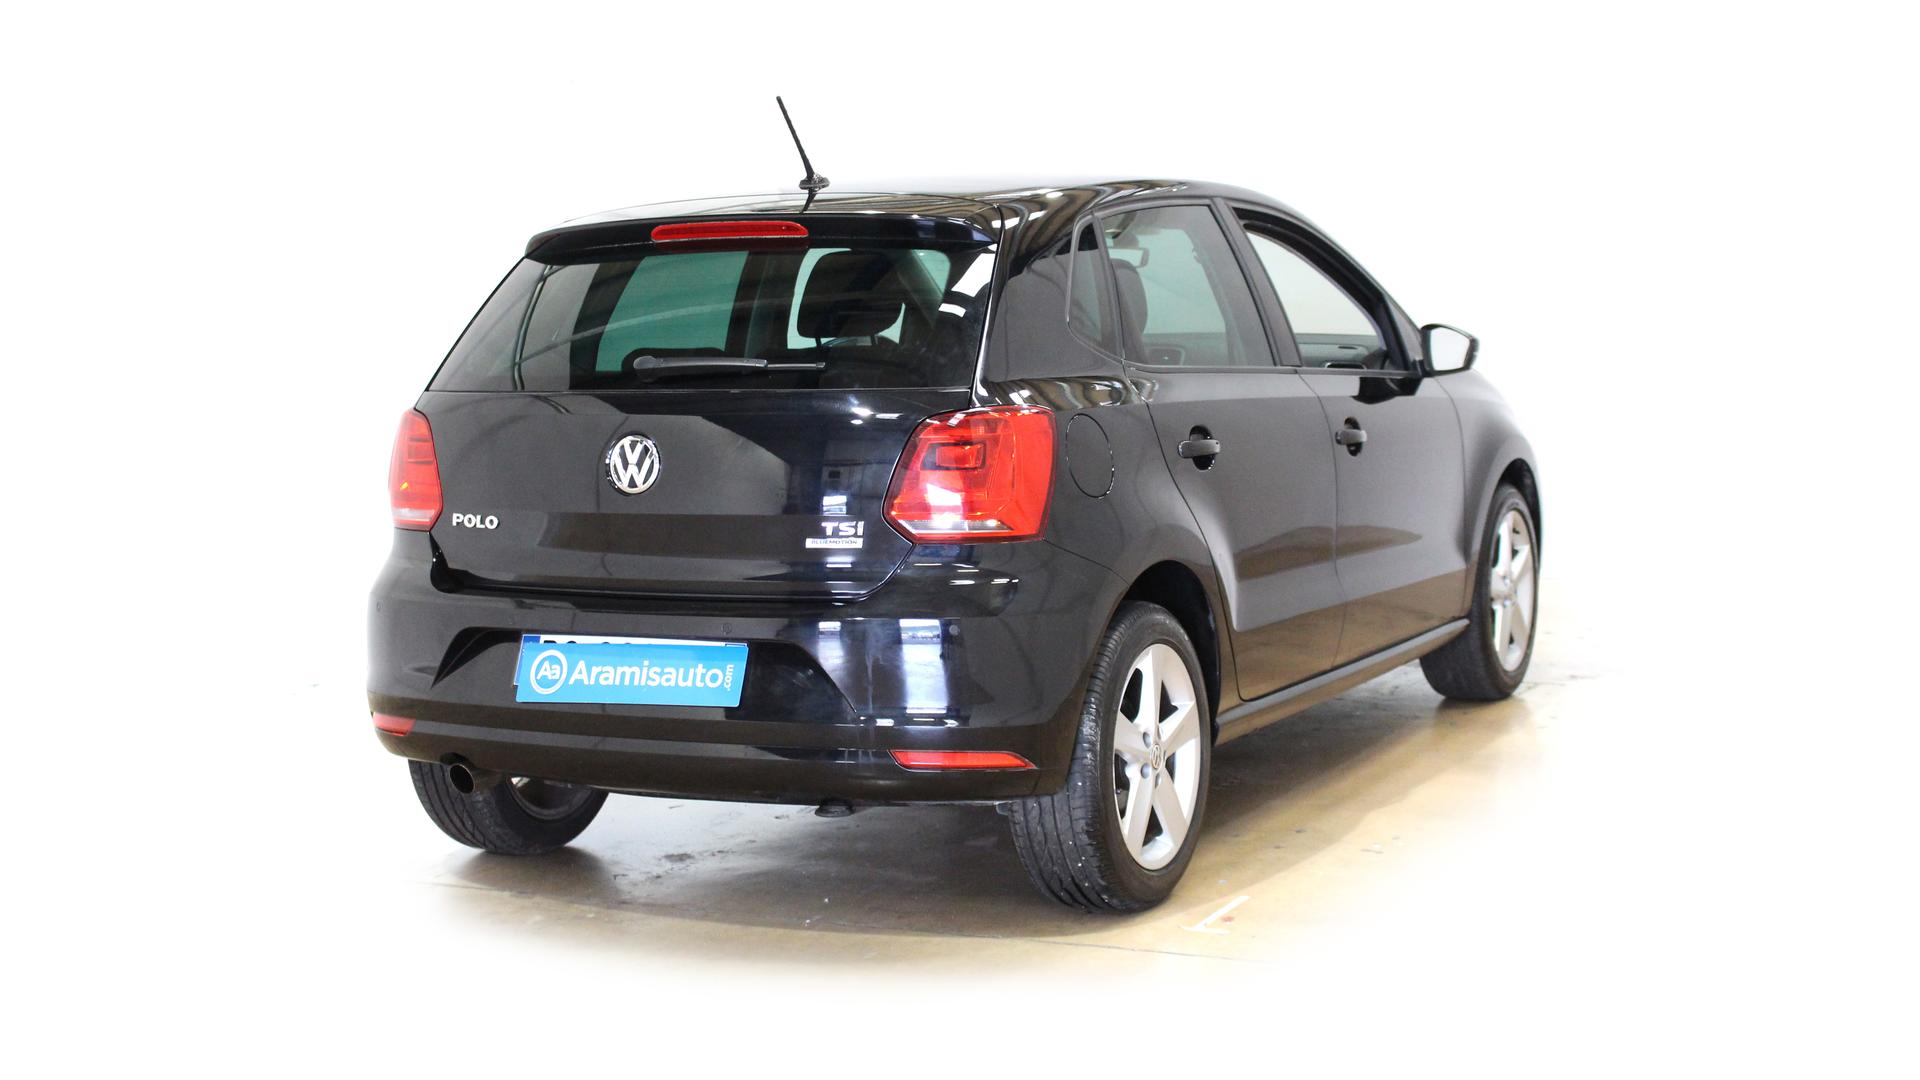 volkswagen polo citadine 5 portes essence 1 2 tsi. Black Bedroom Furniture Sets. Home Design Ideas